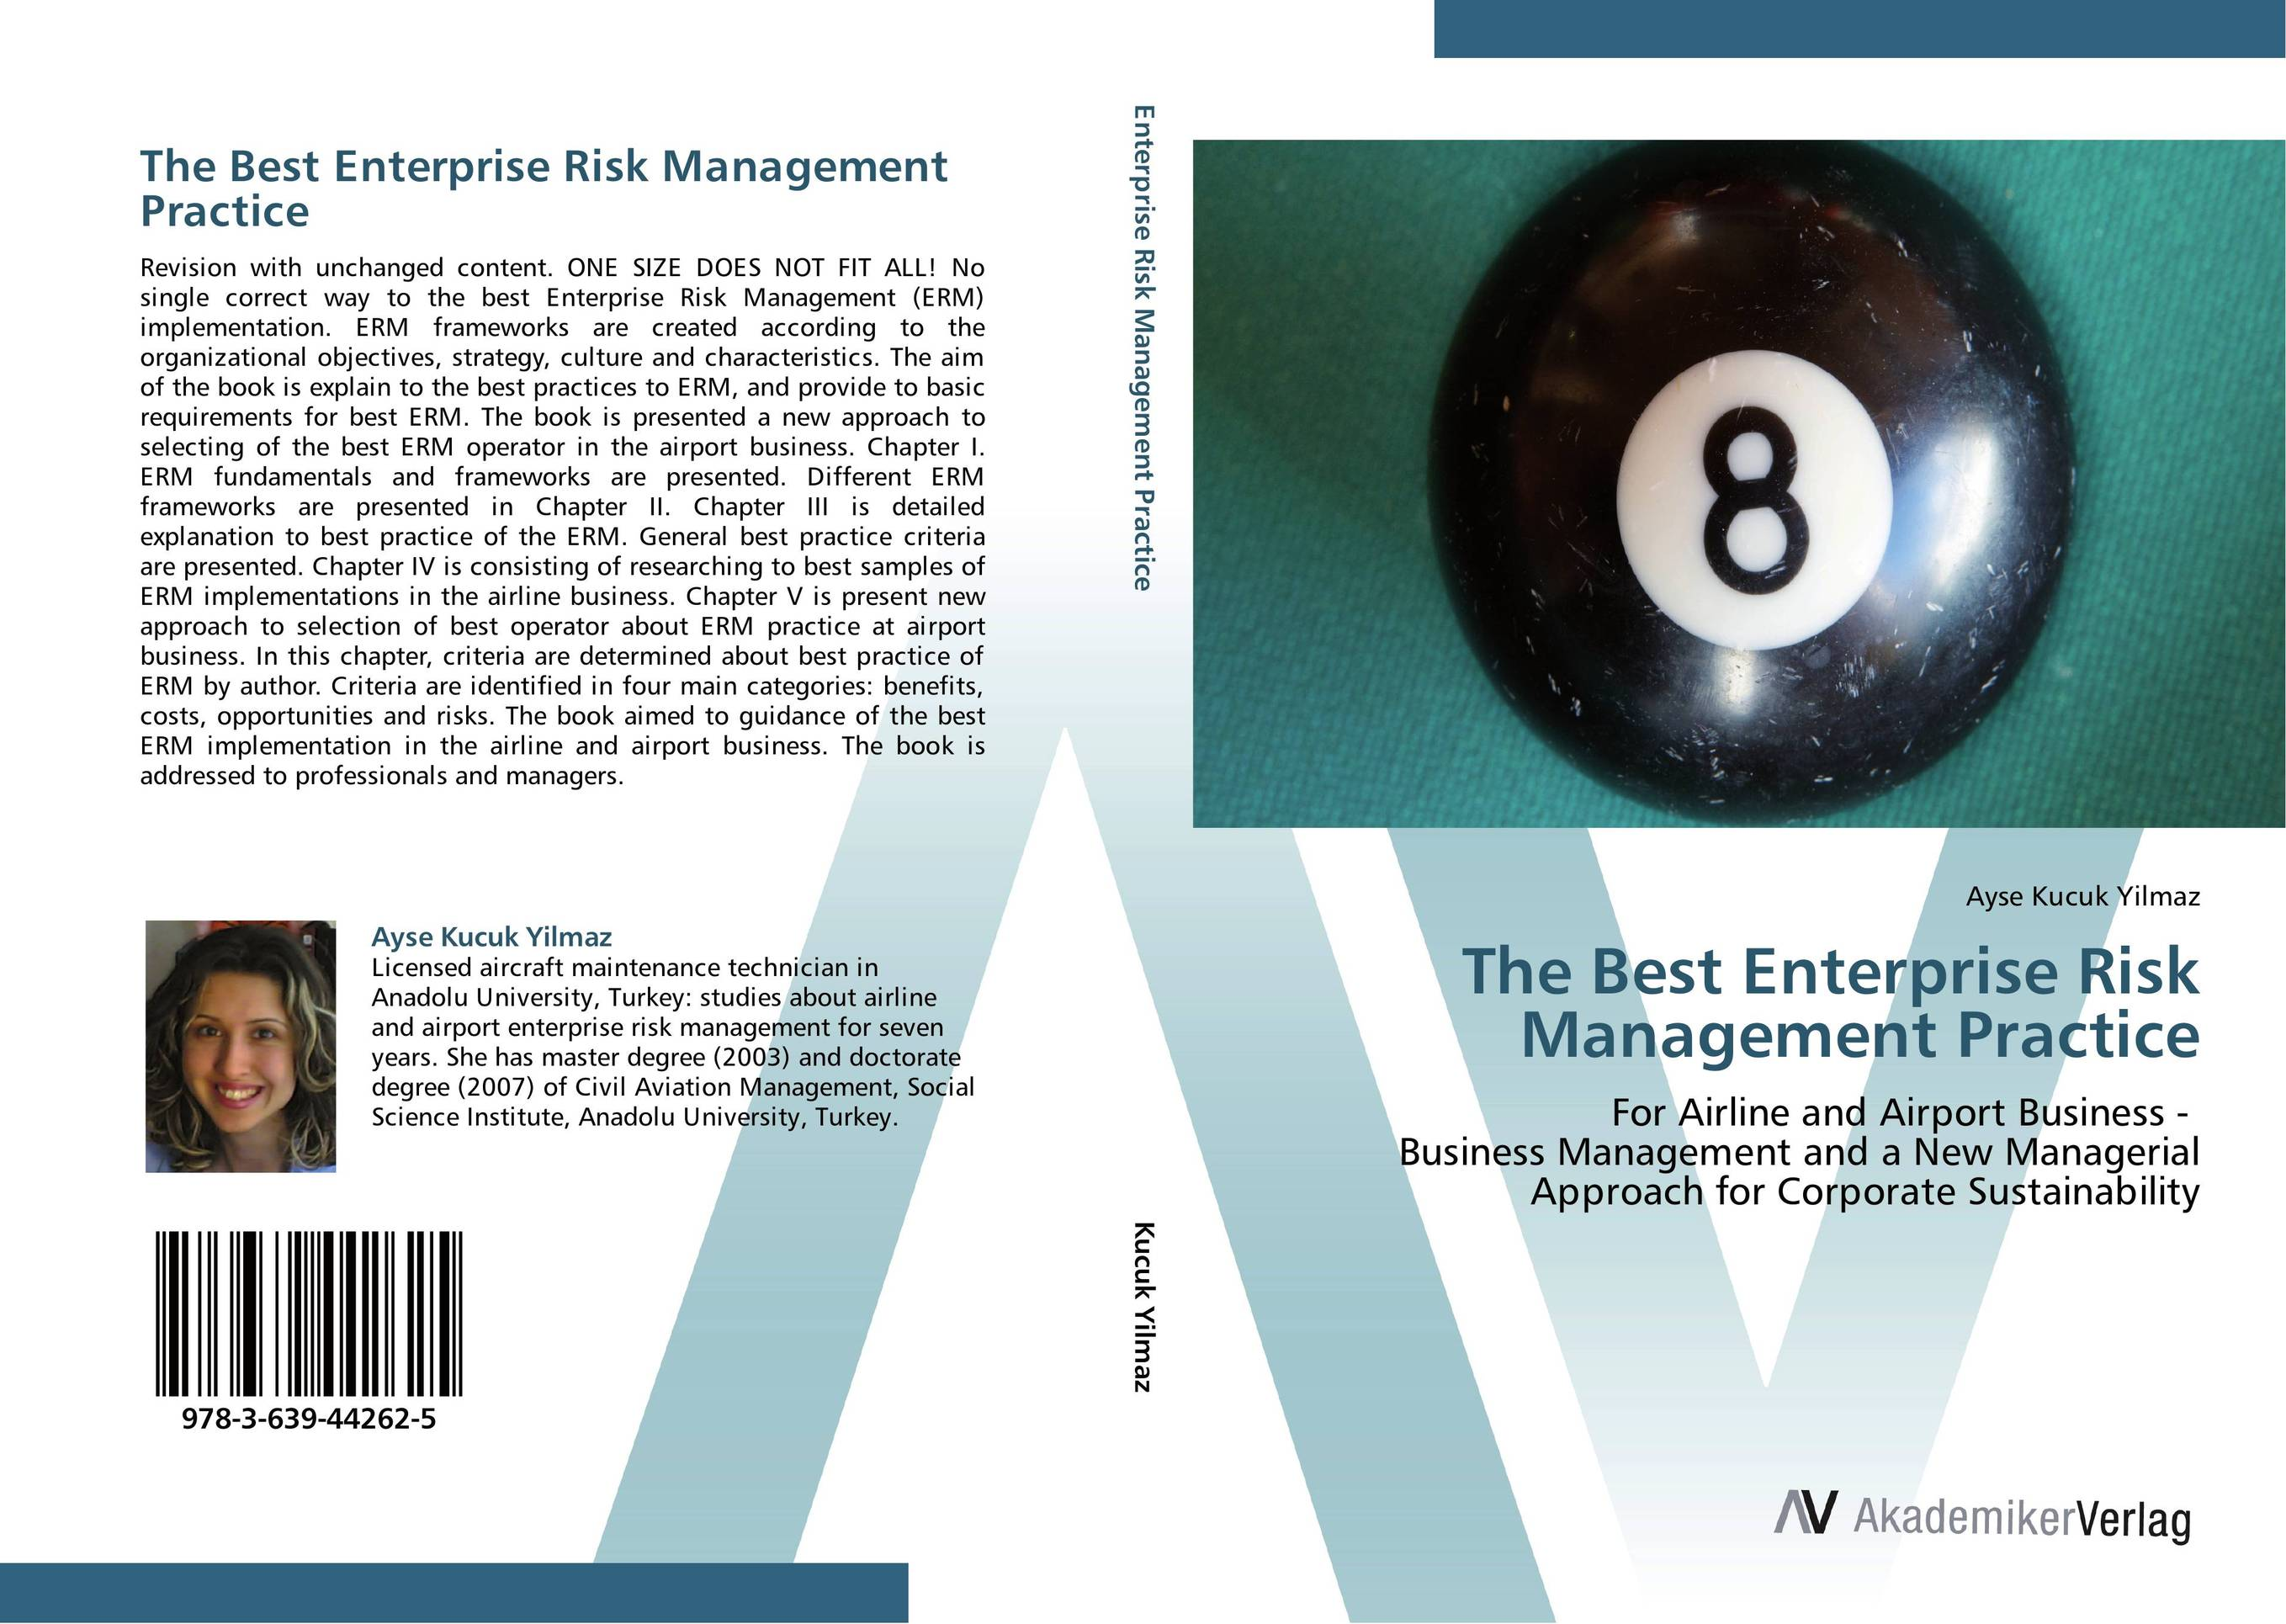 The Best Enterprise Risk Management Practice warren greshes the best damn management book ever 9 keys to creating self motivated high achievers